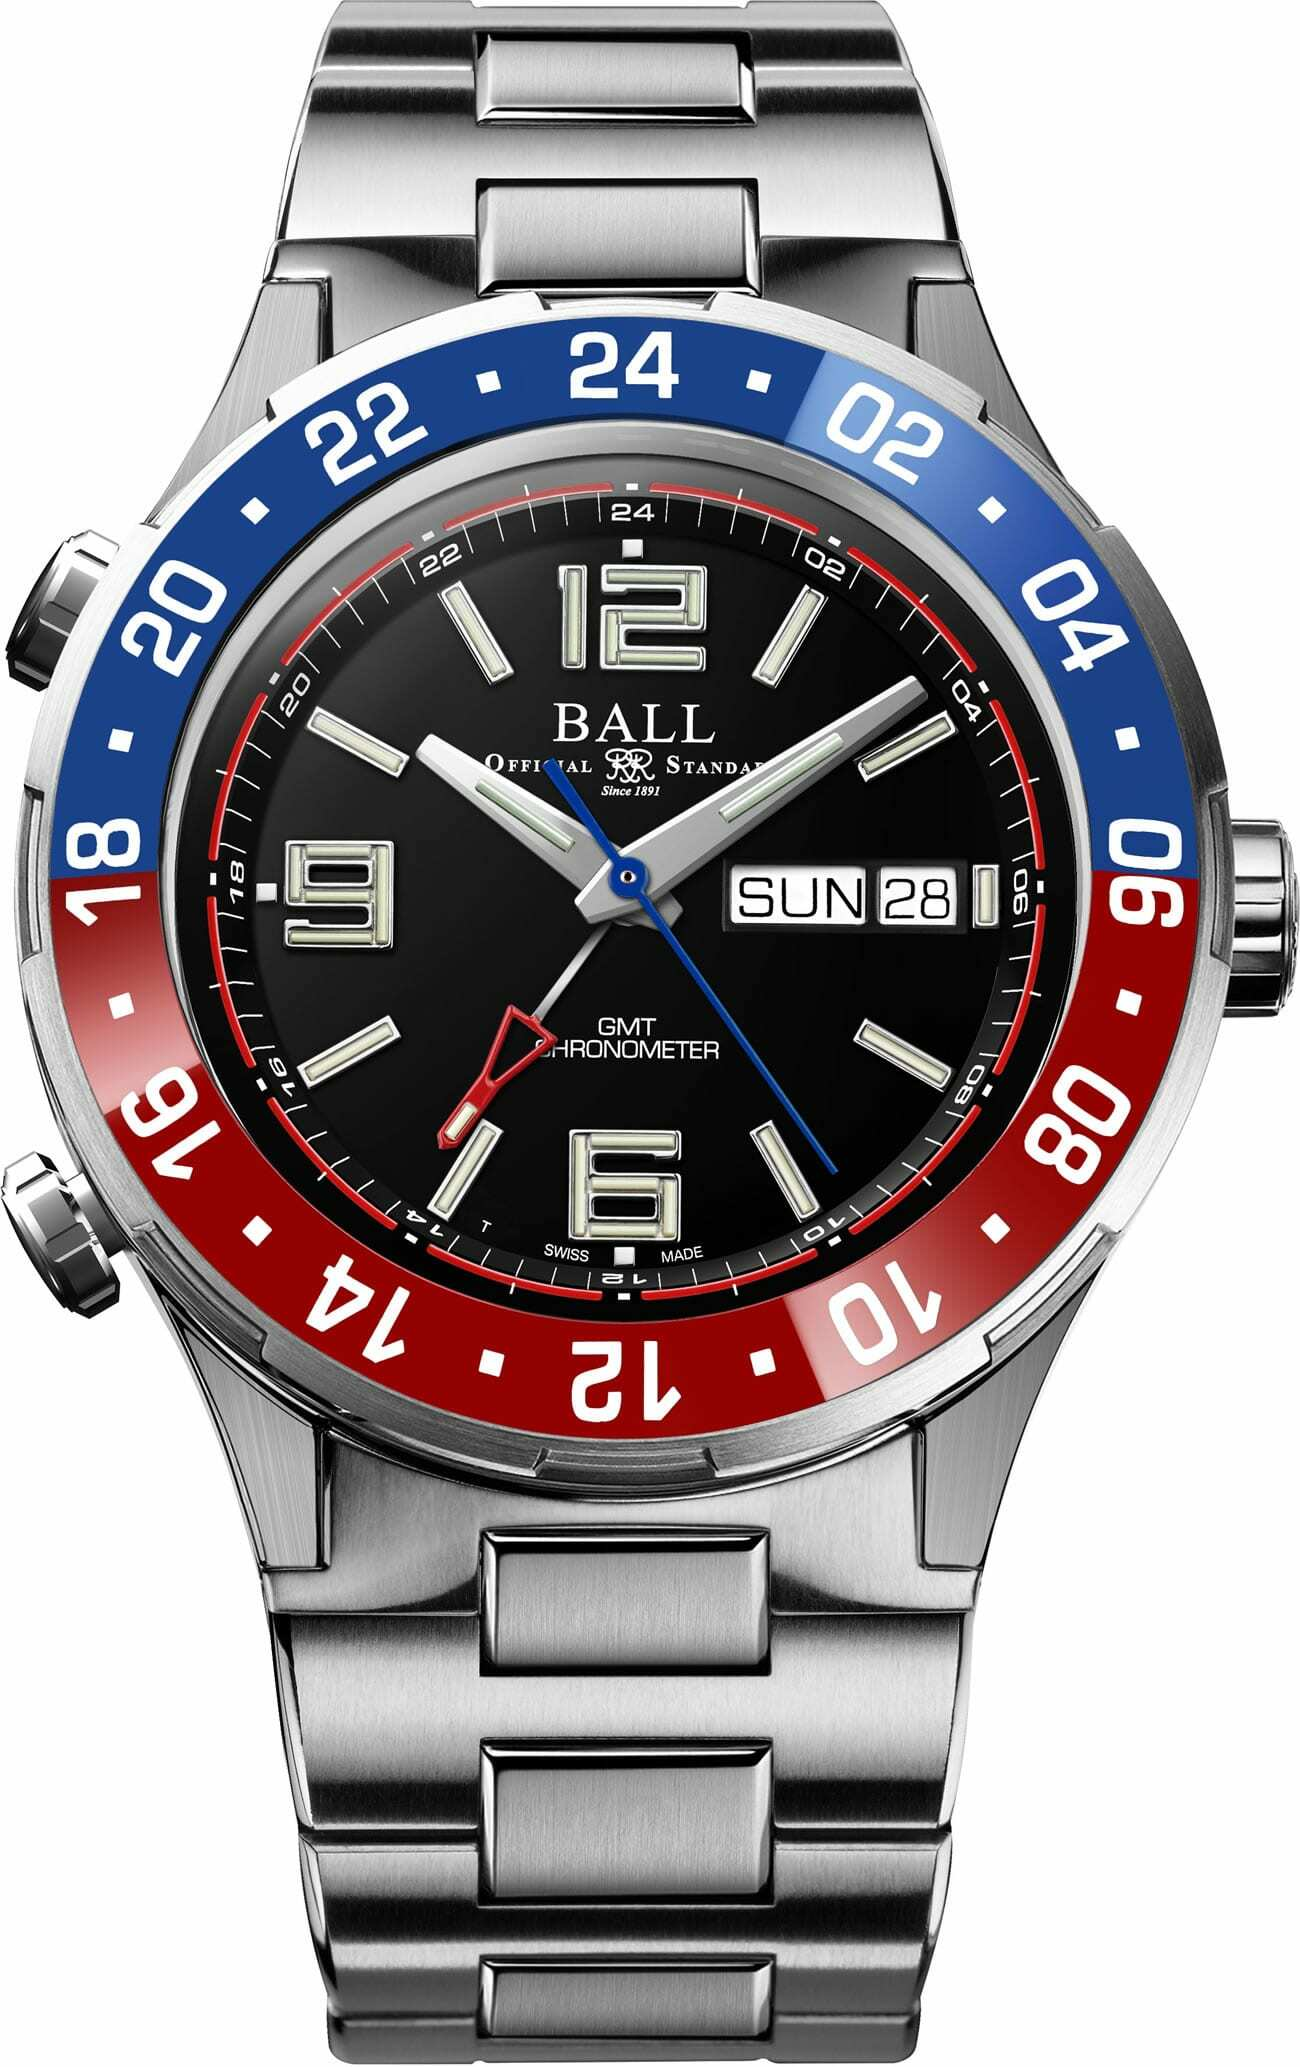 PREORDER BALL DG3030B-S4C-BK Roadmaster Marine GMT LIMITED EDITION Watch